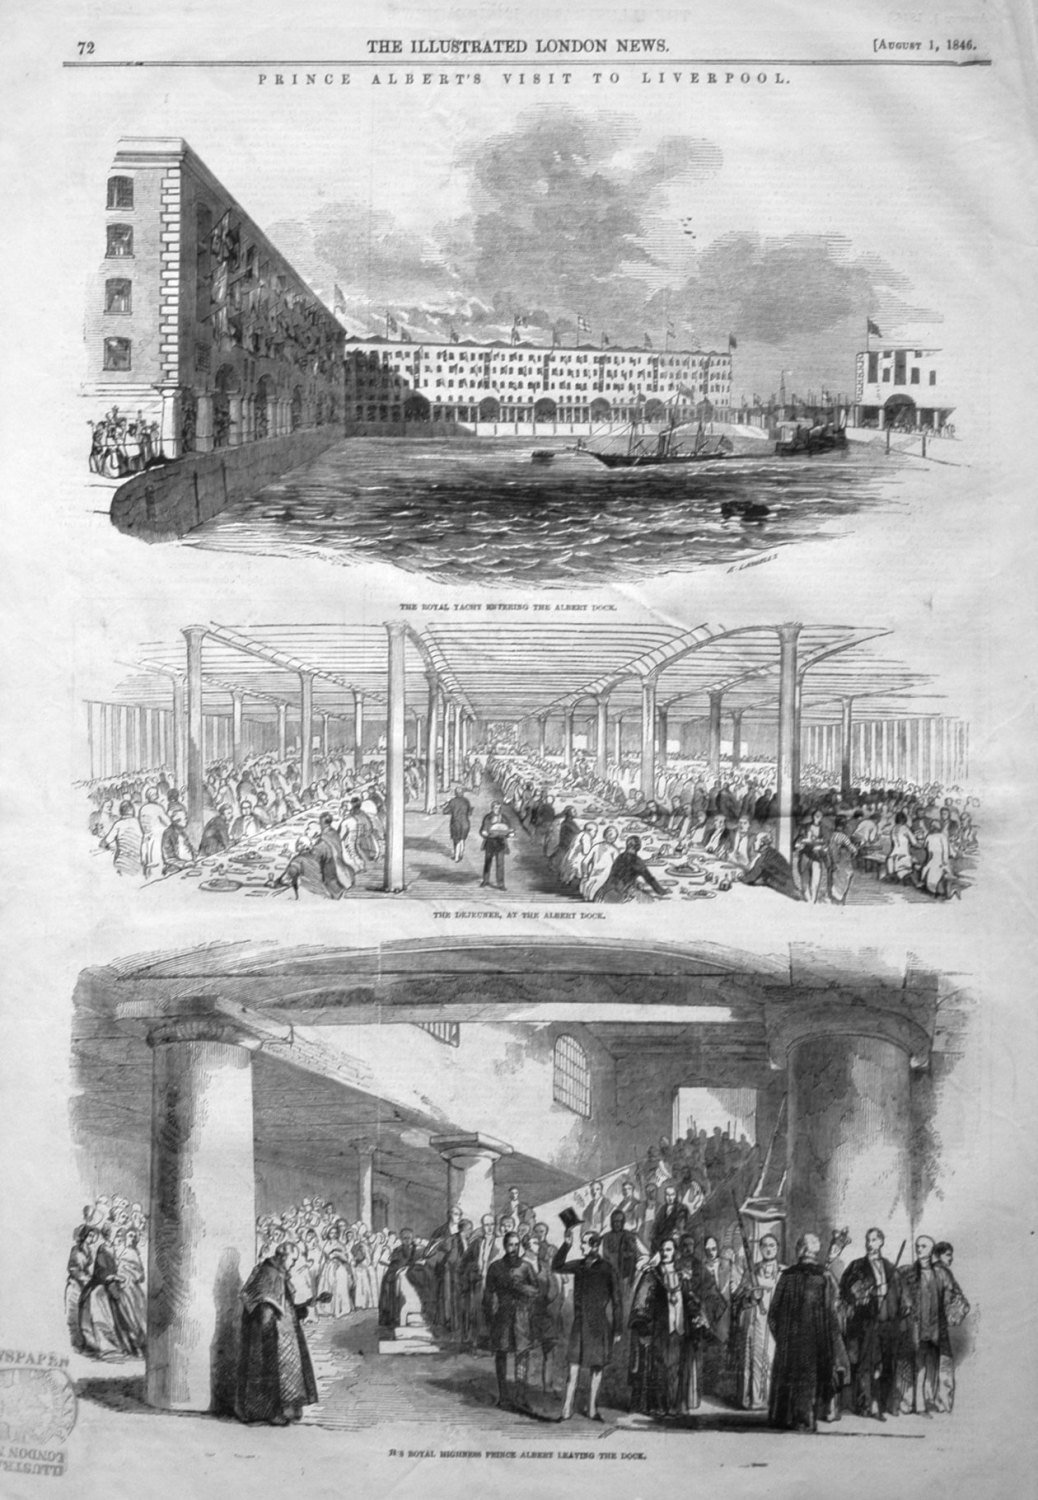 Prince Albert's Visit to Liverpool. 1846